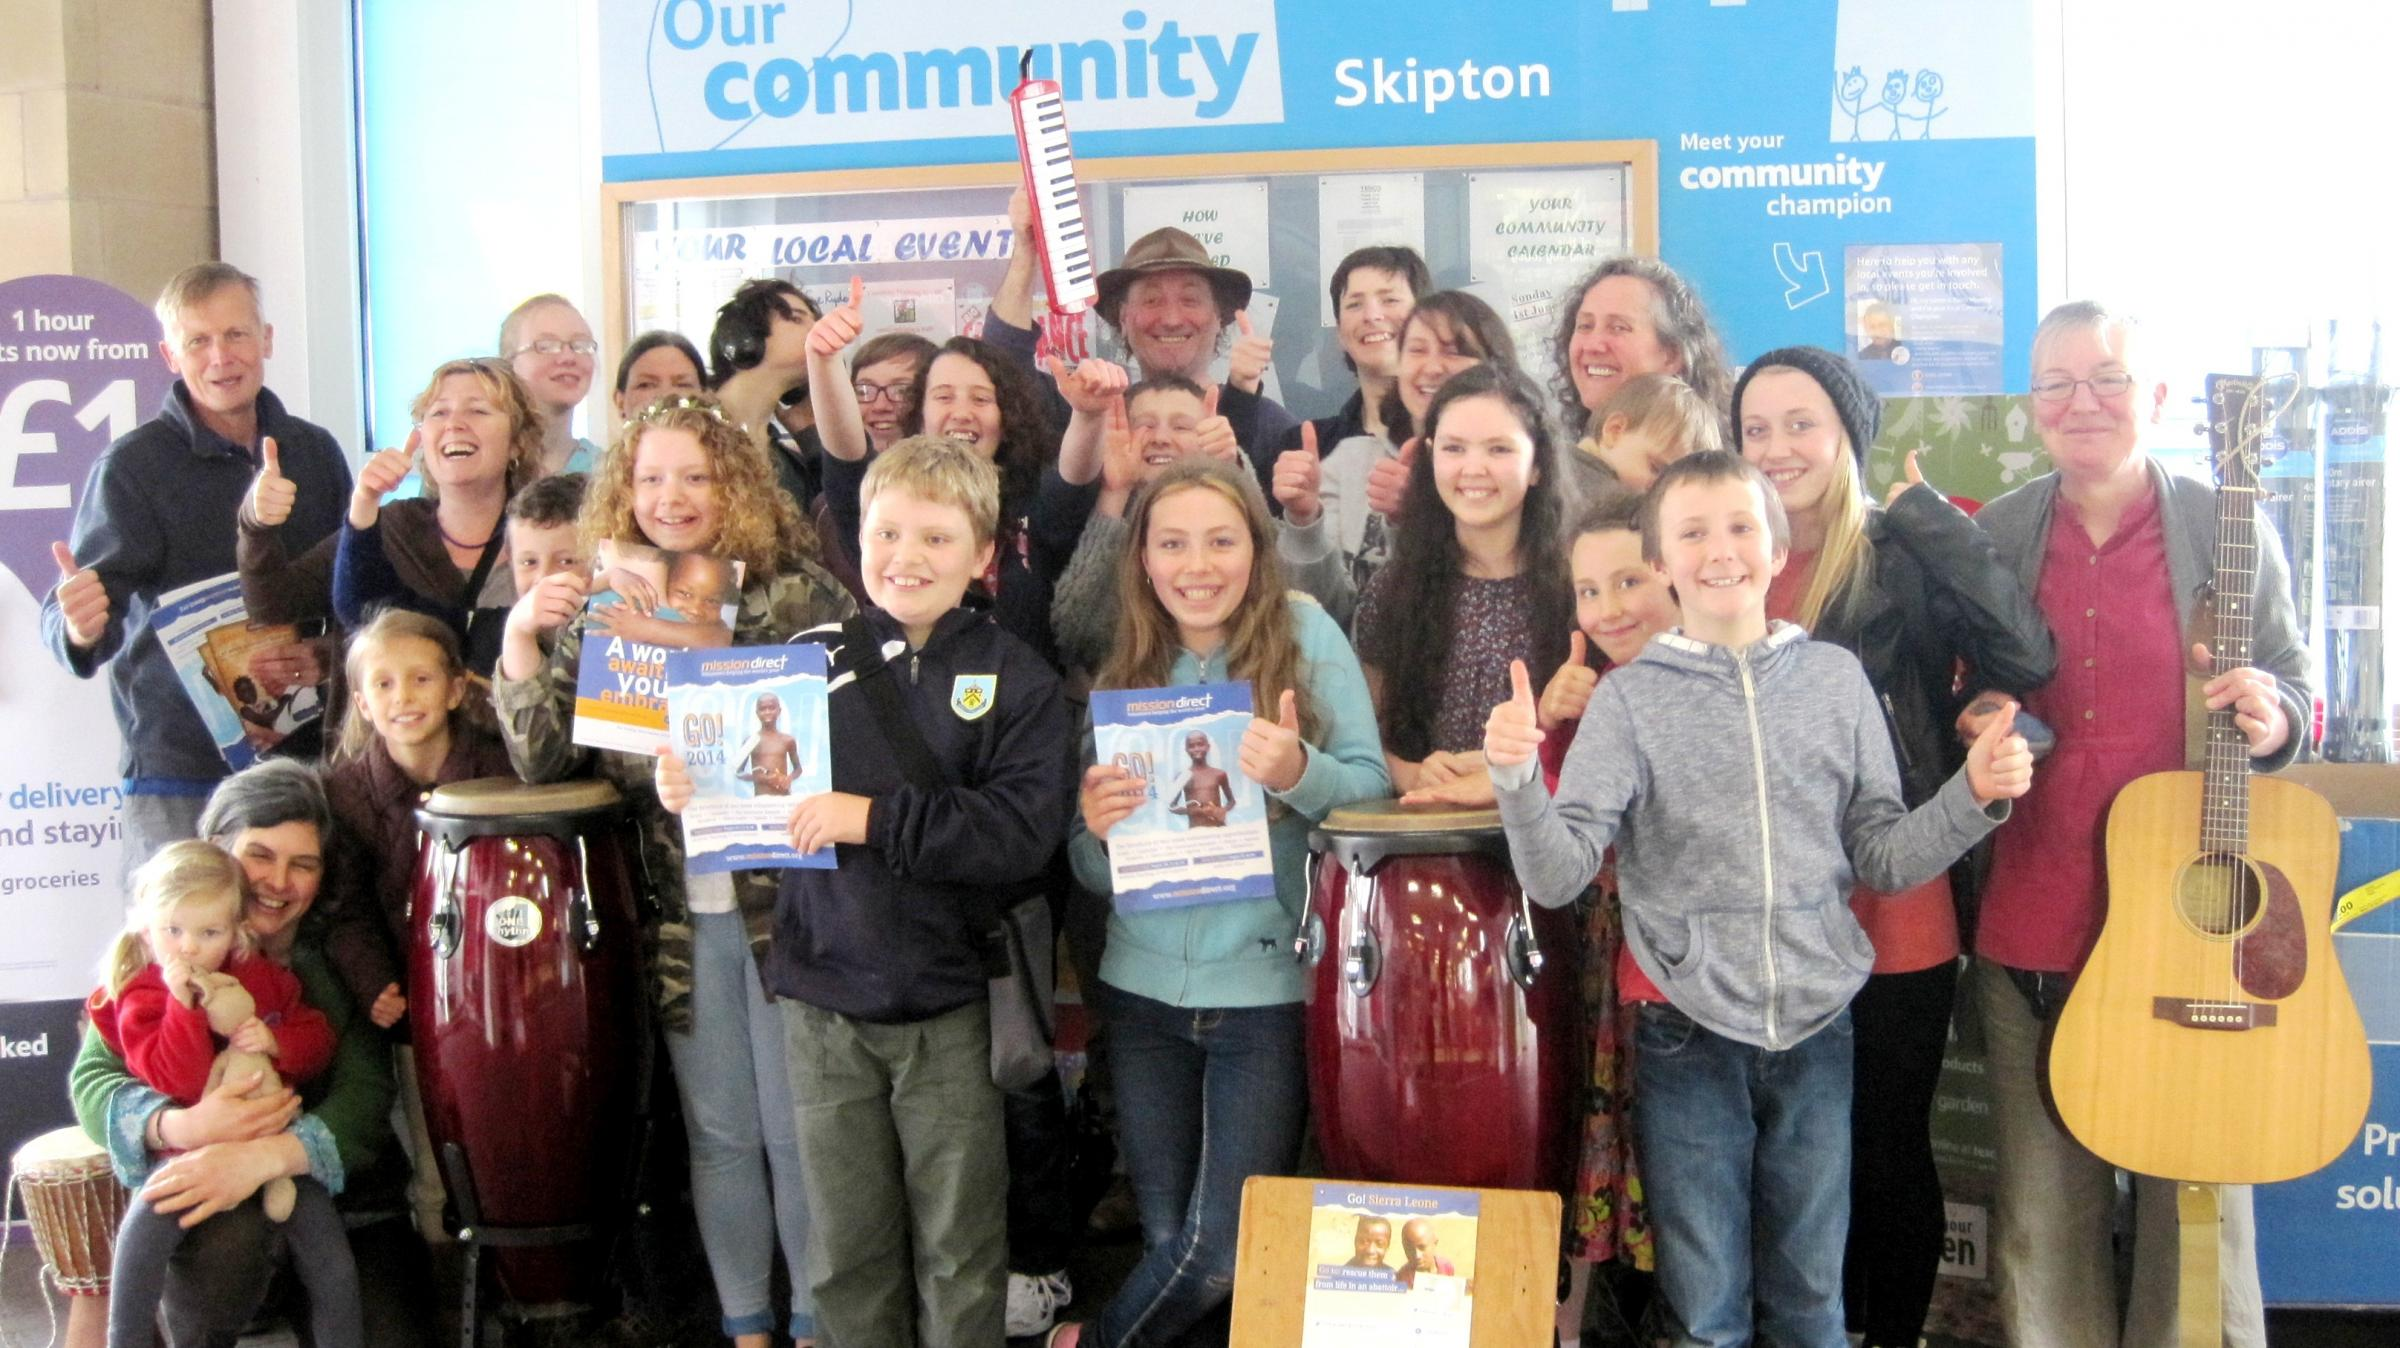 Home educators entertain shoppers at Skipton's Tesco store